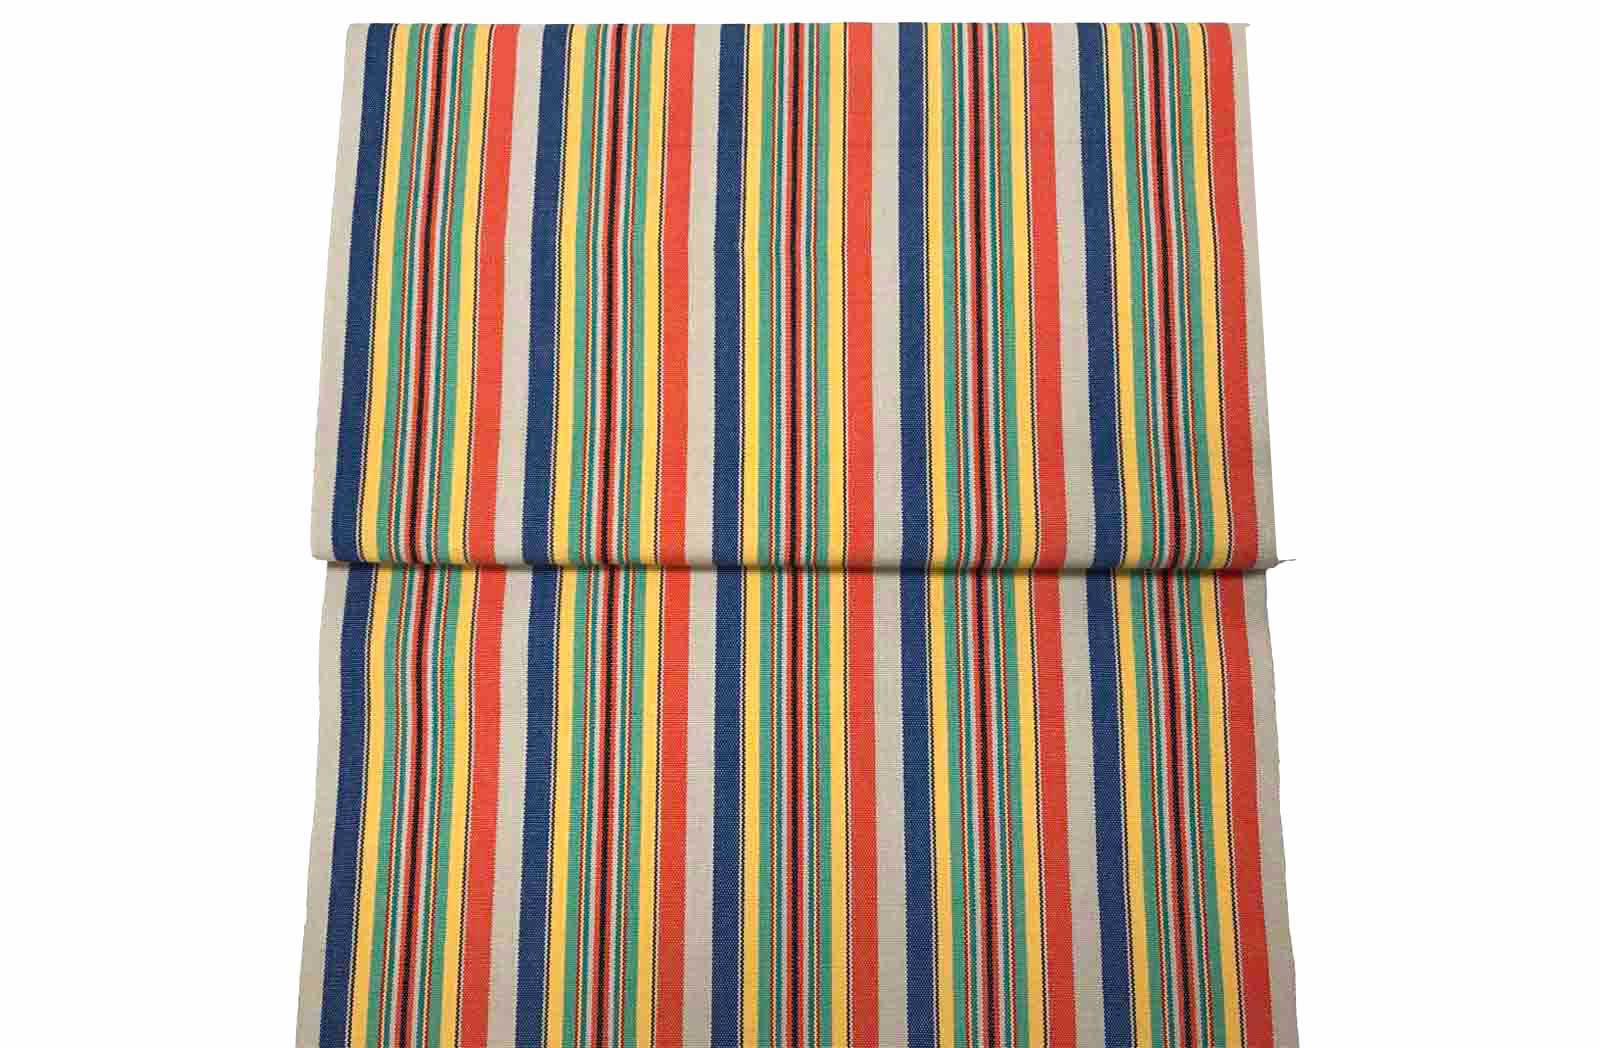 Solitaire Vintage Deckchair Fabric The Stripes Company